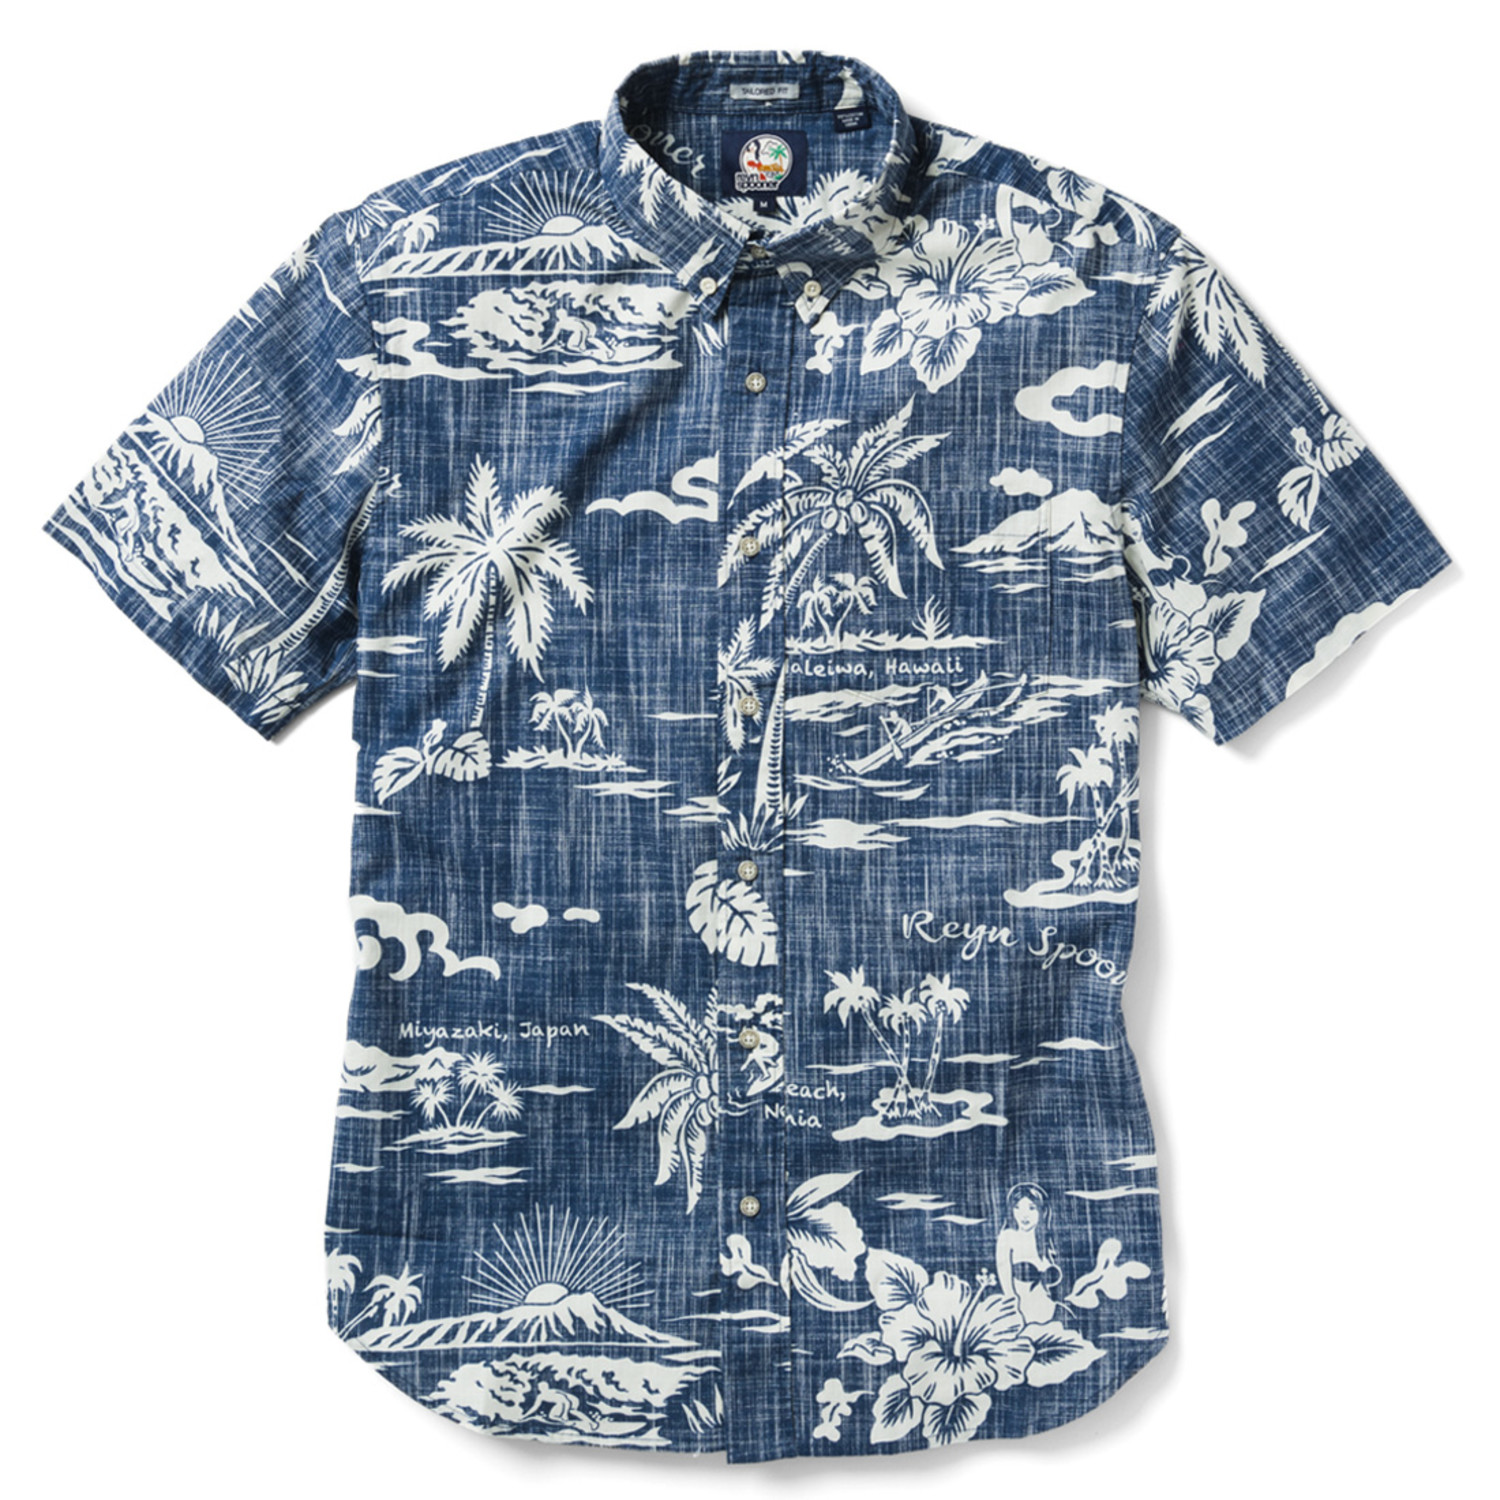 d53d5e89 My Private Isle Tailored Shirt // Ink (XS) - Reyn Spooner - Touch of ...